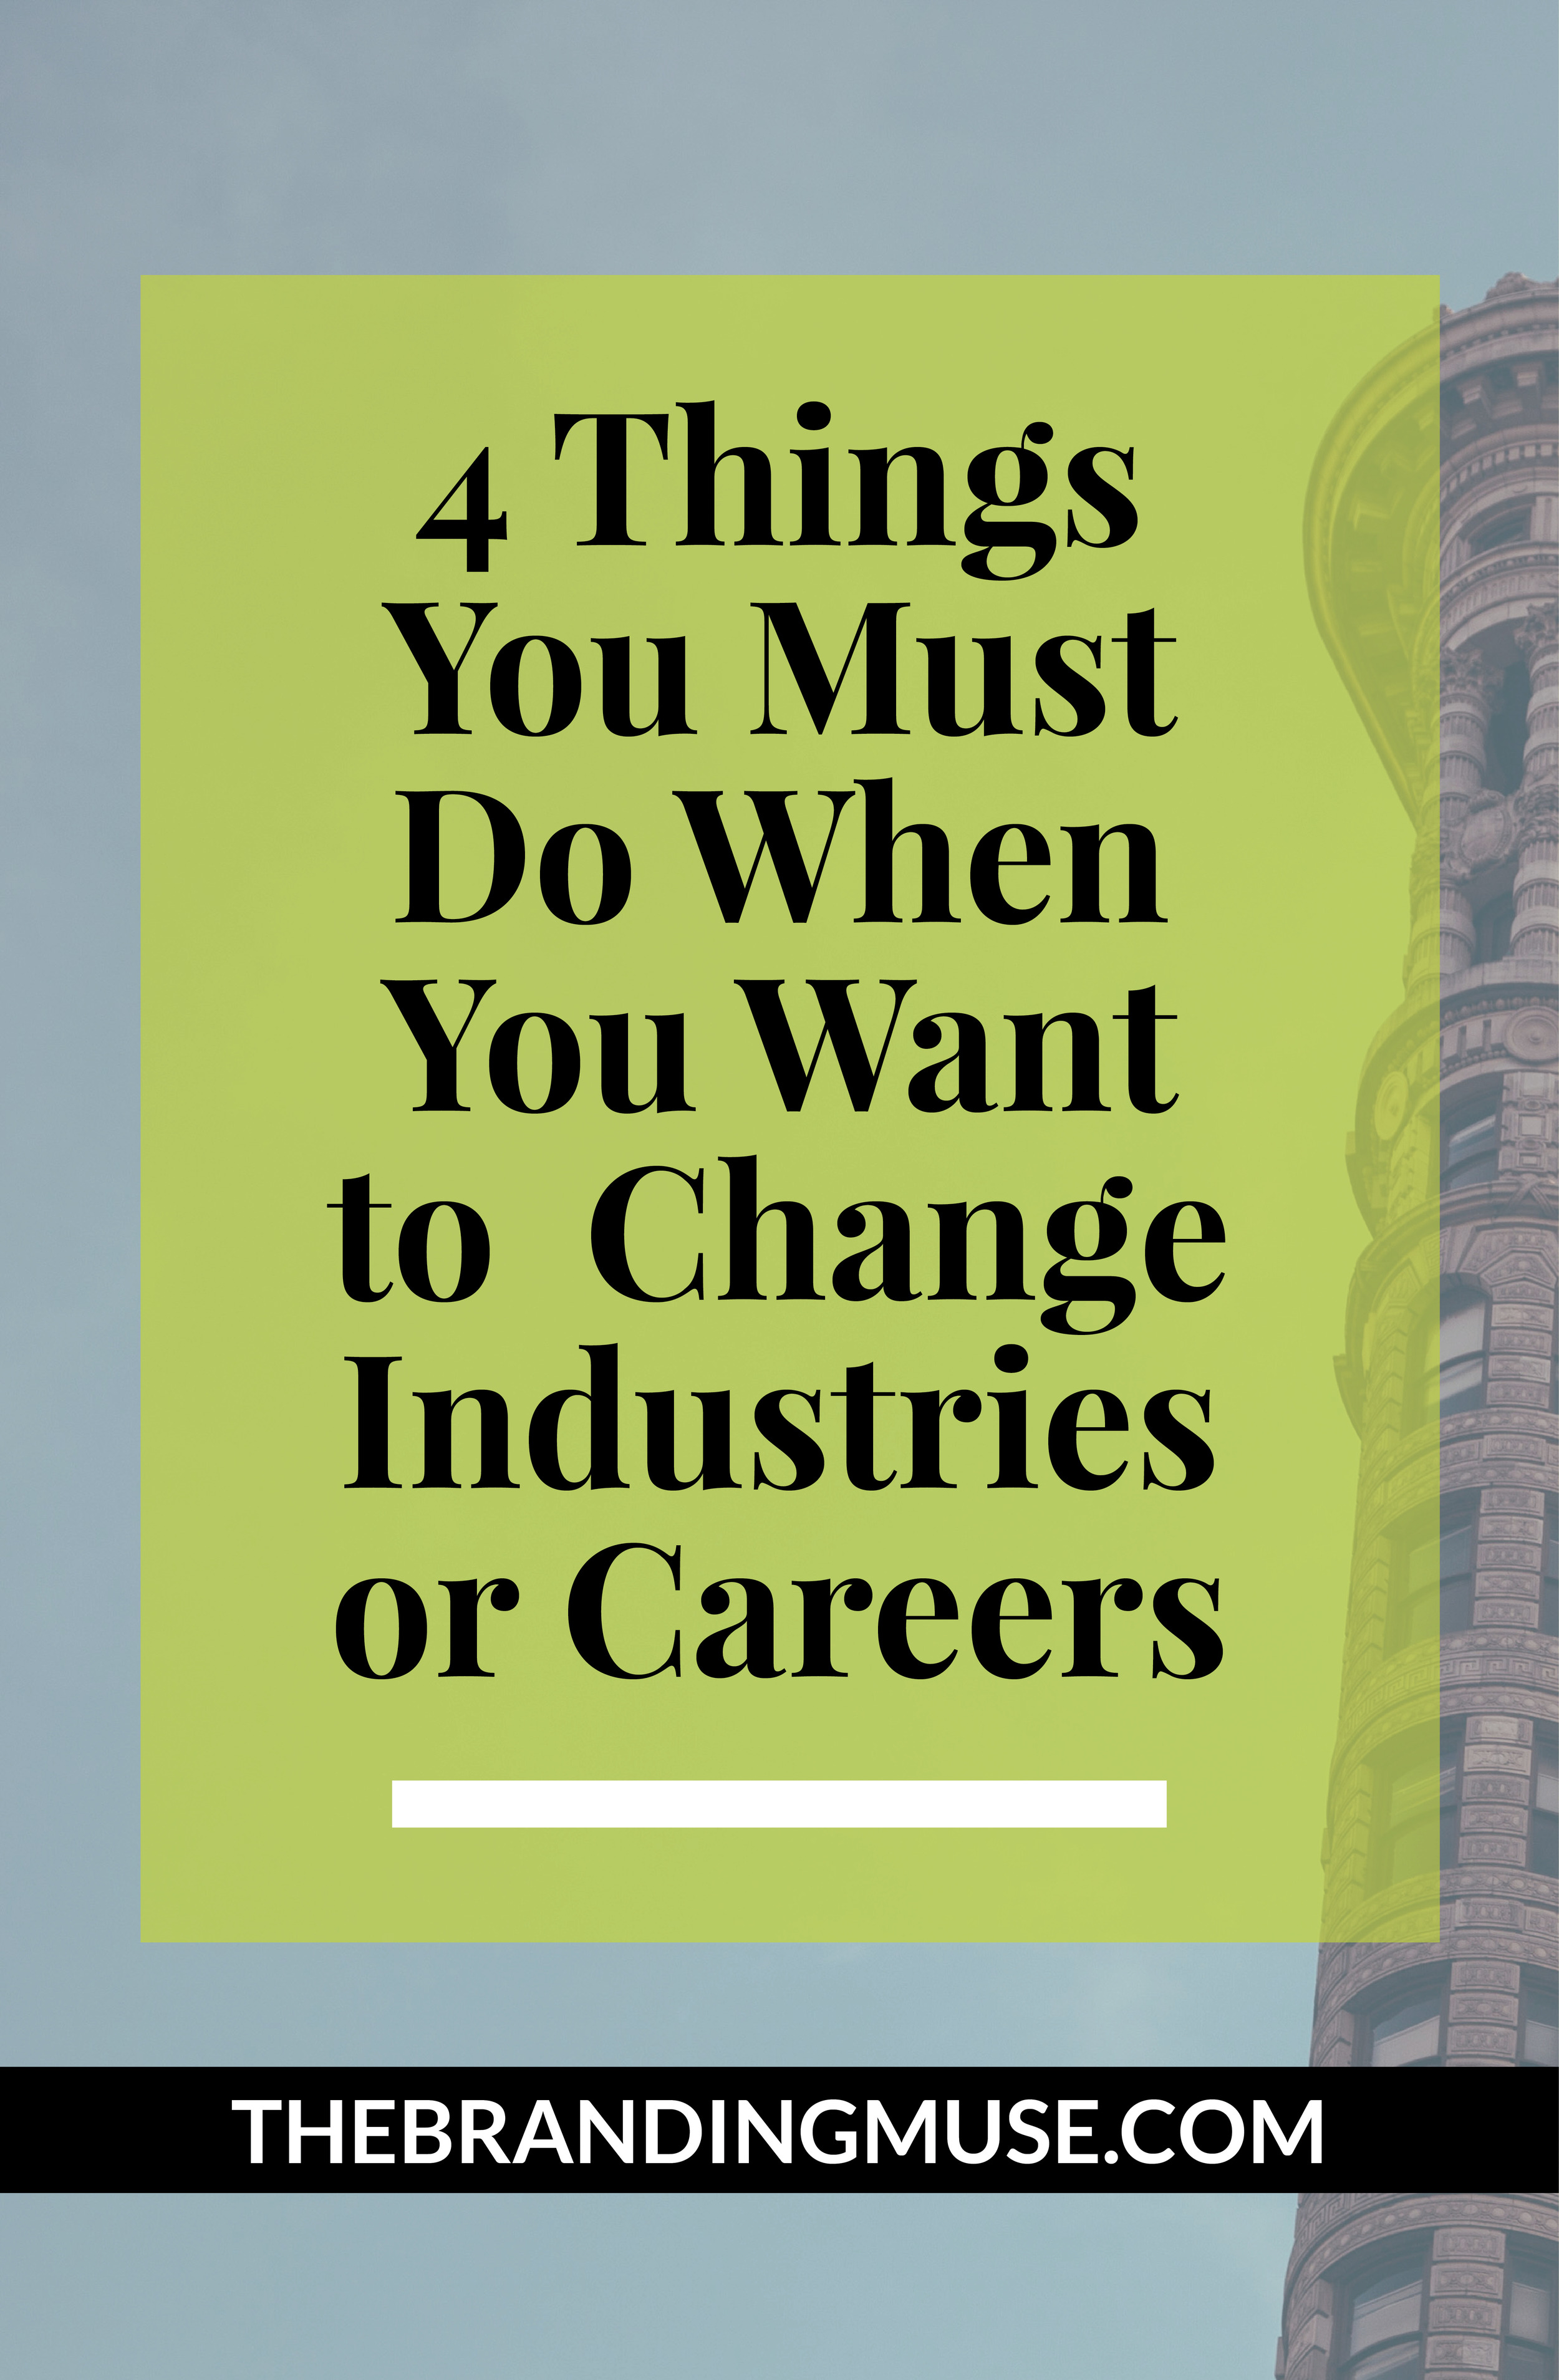 4 Things You Must Do When You Want to Change Industries or Careers